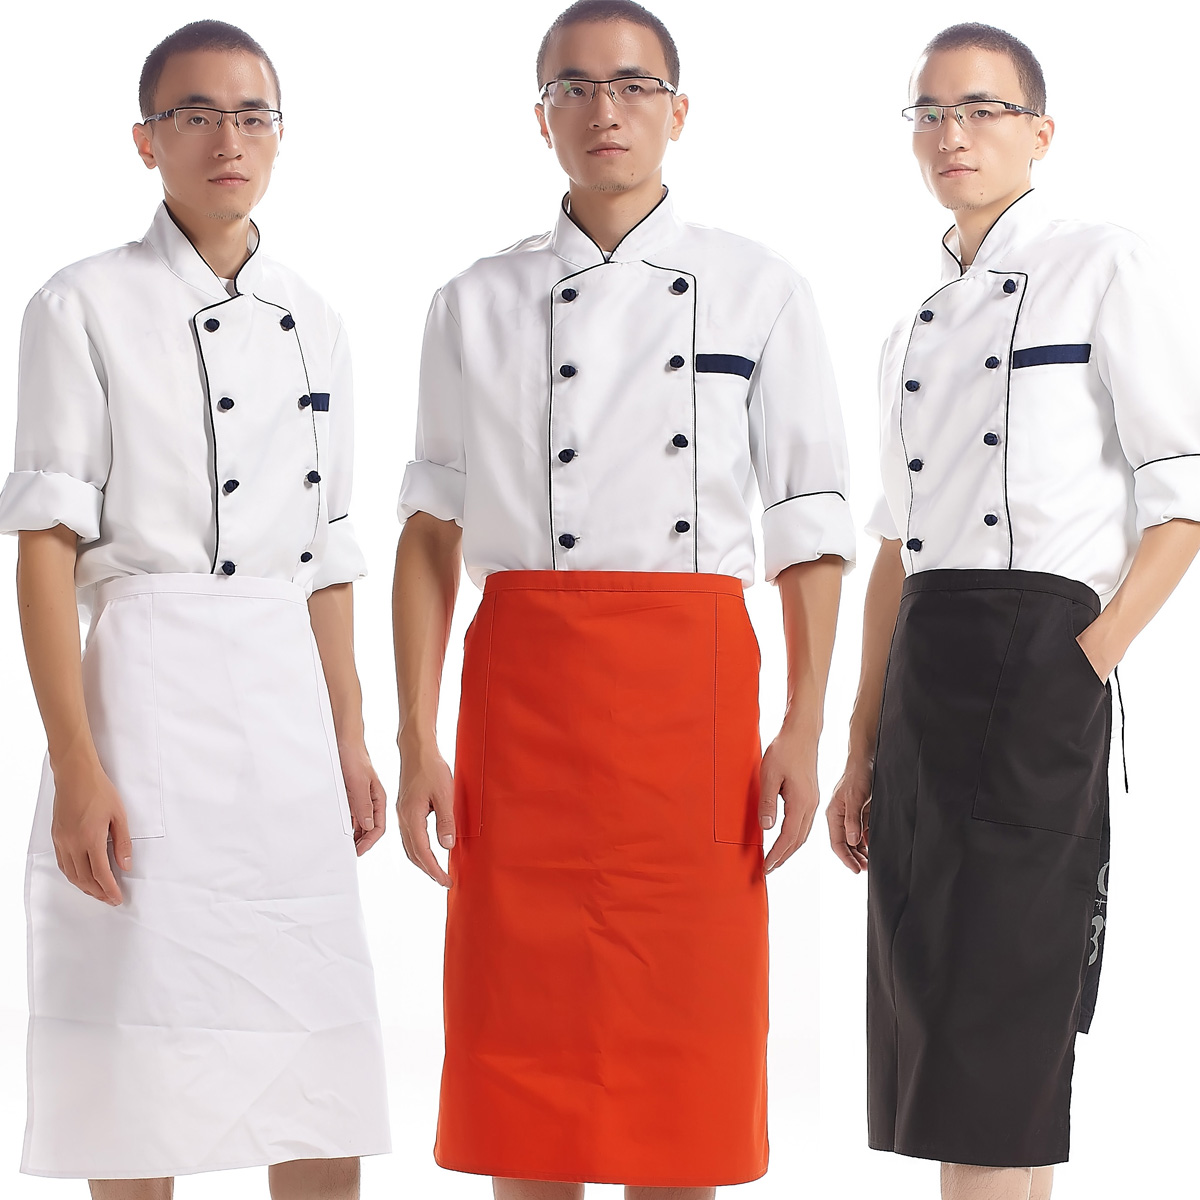 Seven lotus new cook small canvas half length apron adjustable kitchen work apron 20031 thick fabric(China (Mainland))